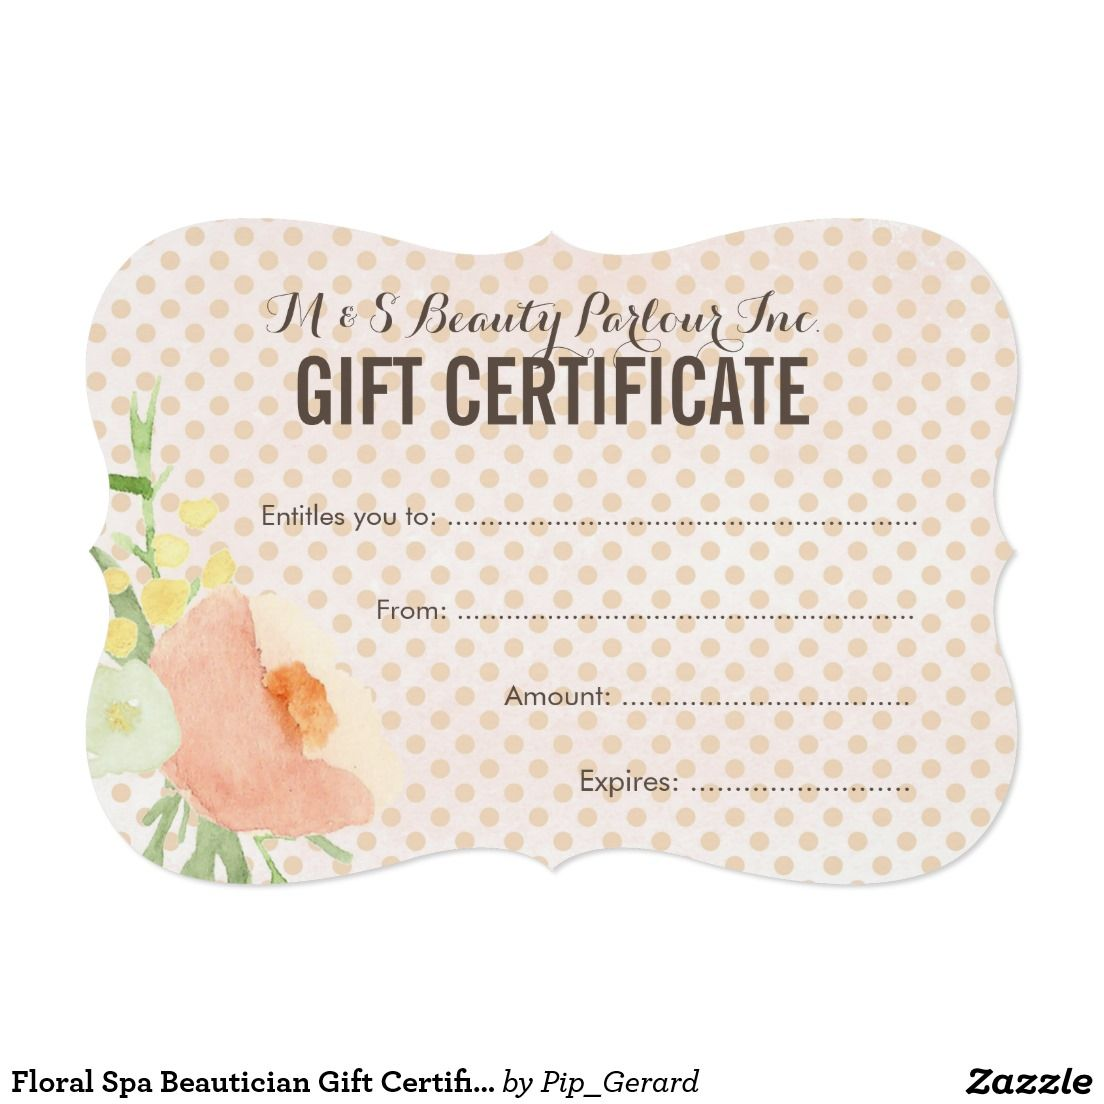 Floral spa beautician gift certificate template card my space floral spa beautician gift certificate template card xflitez Image collections